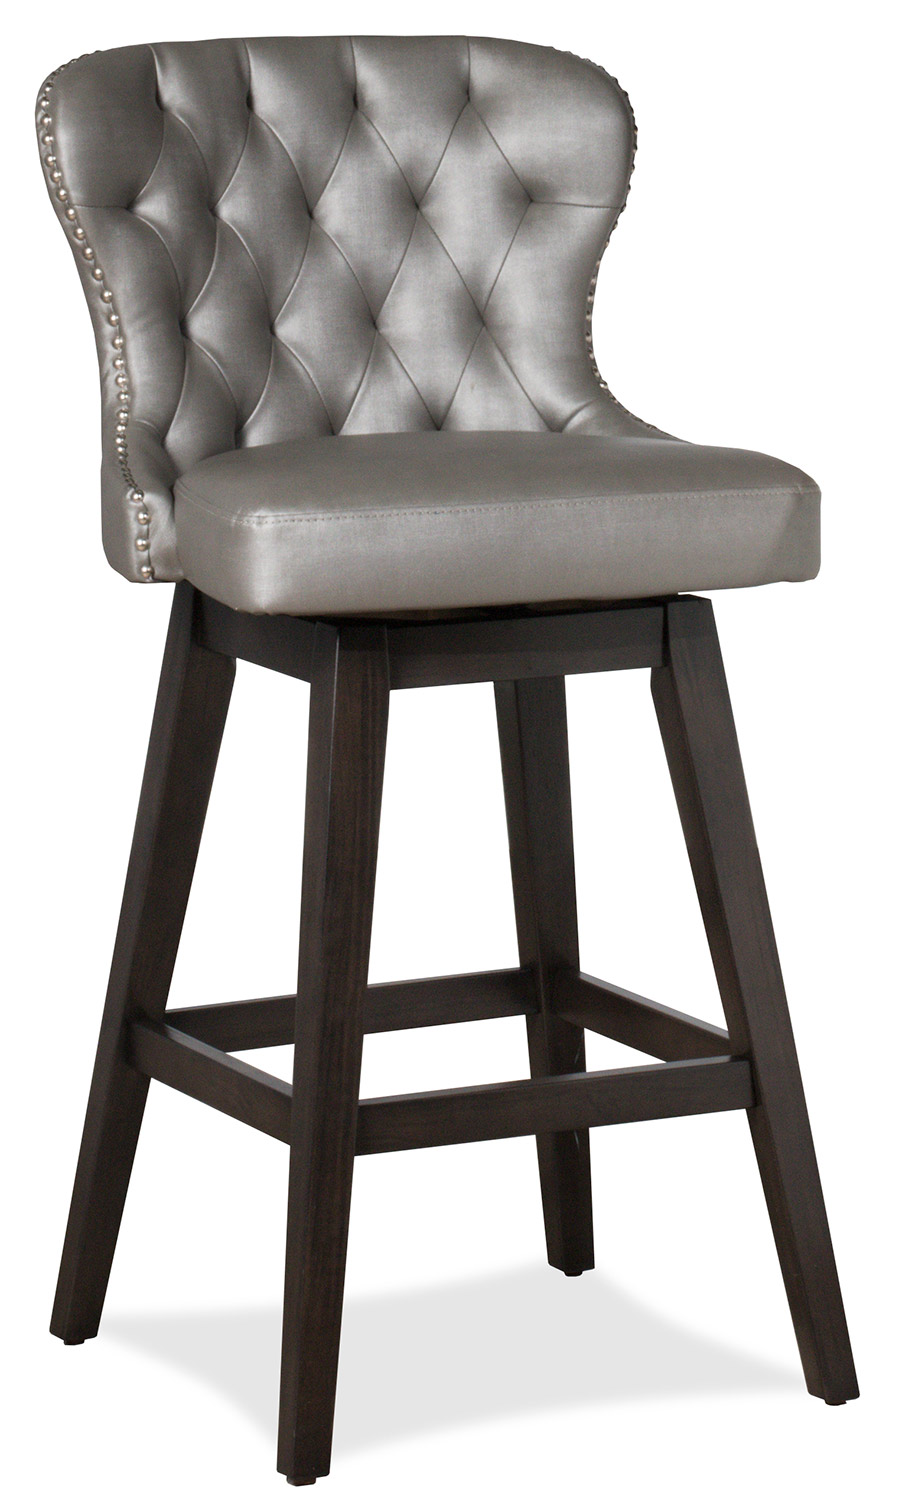 Hillsdale Rosabella Swivel Counter Stool - Charcoal